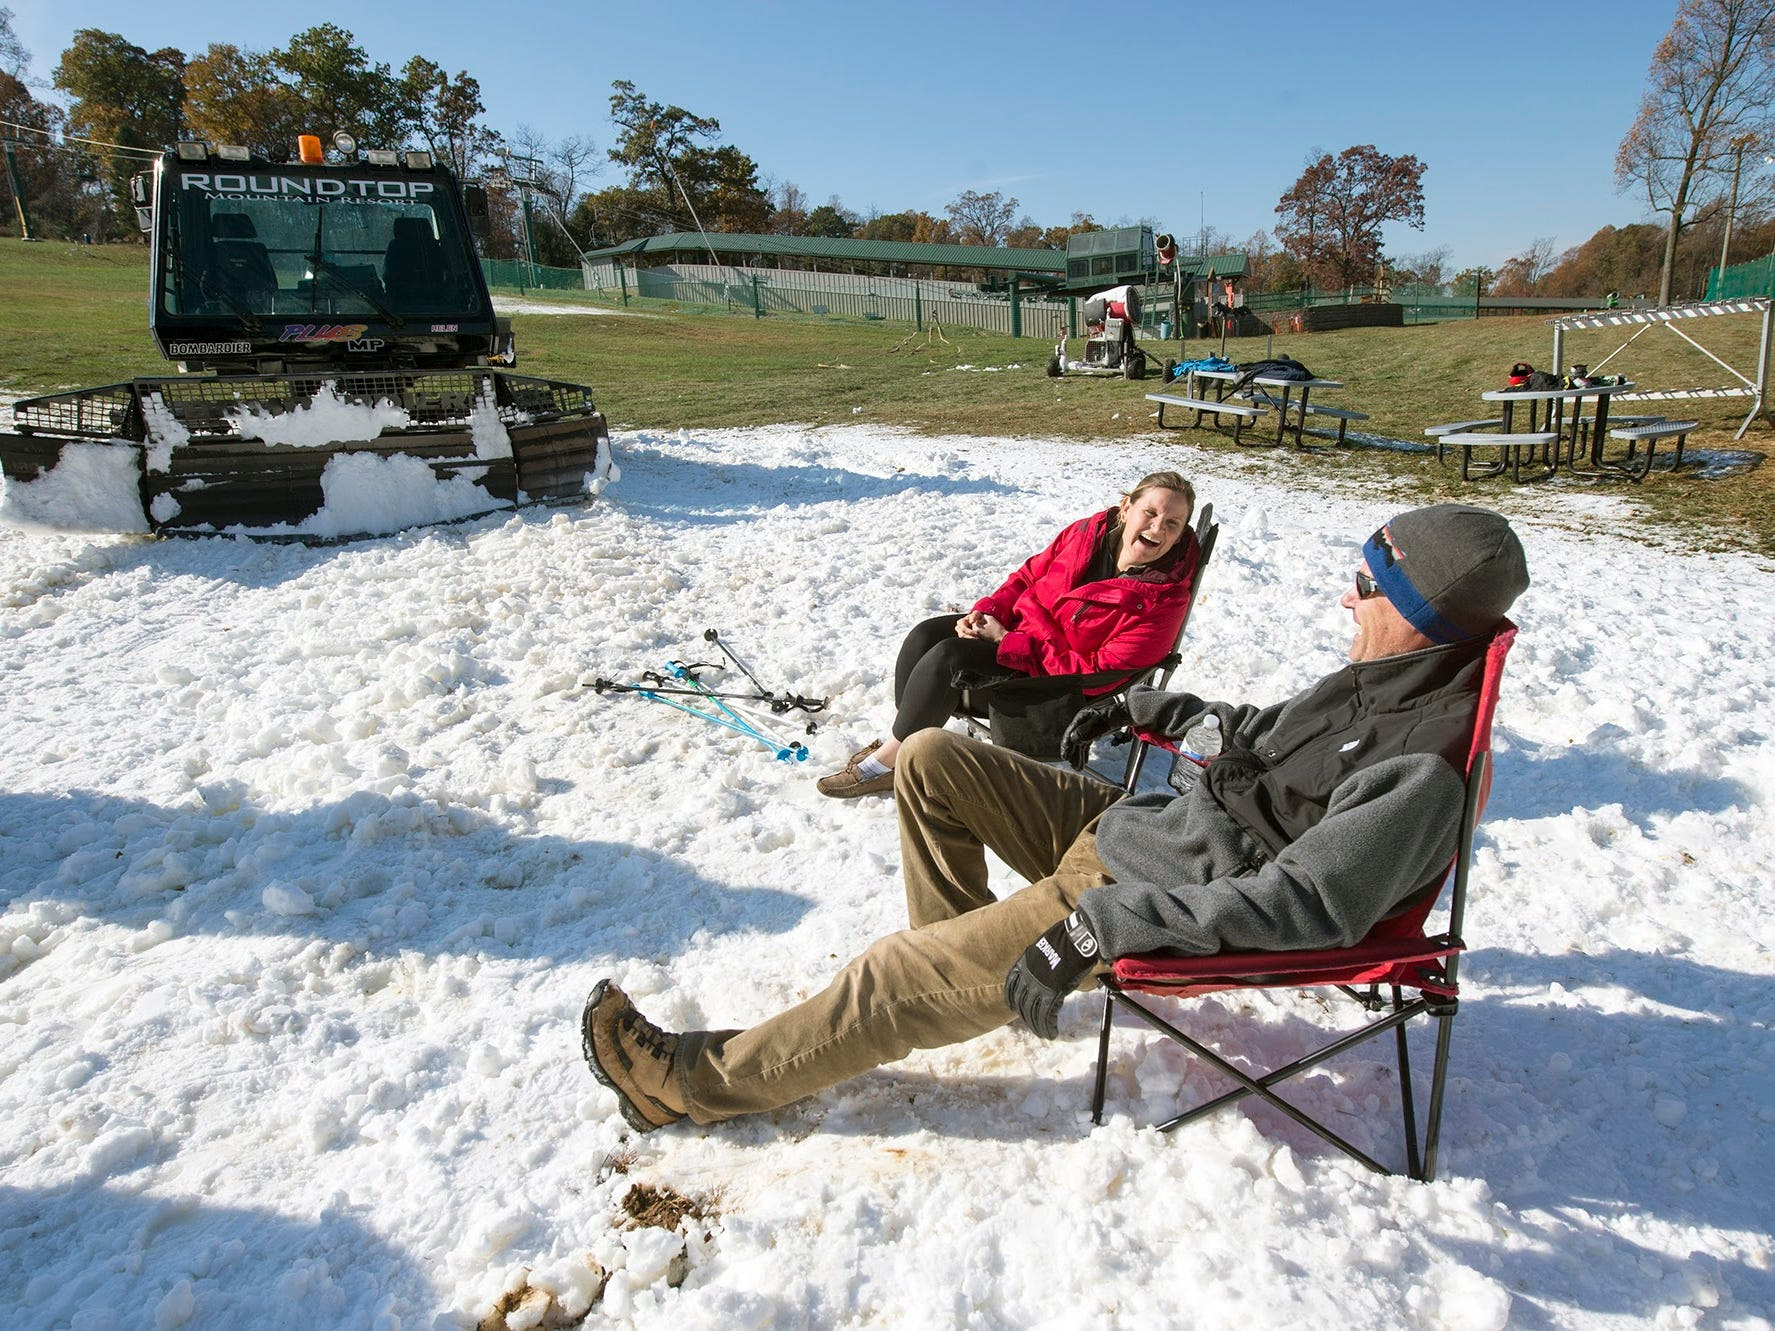 Parents Korynne McHugh, left, of Camp Hill and Jim Wheeler, of Michanicsburg, brought their lounge chairs to take in the sun while their kids skied at Roundtop Mountain Resort November 12, 2017.